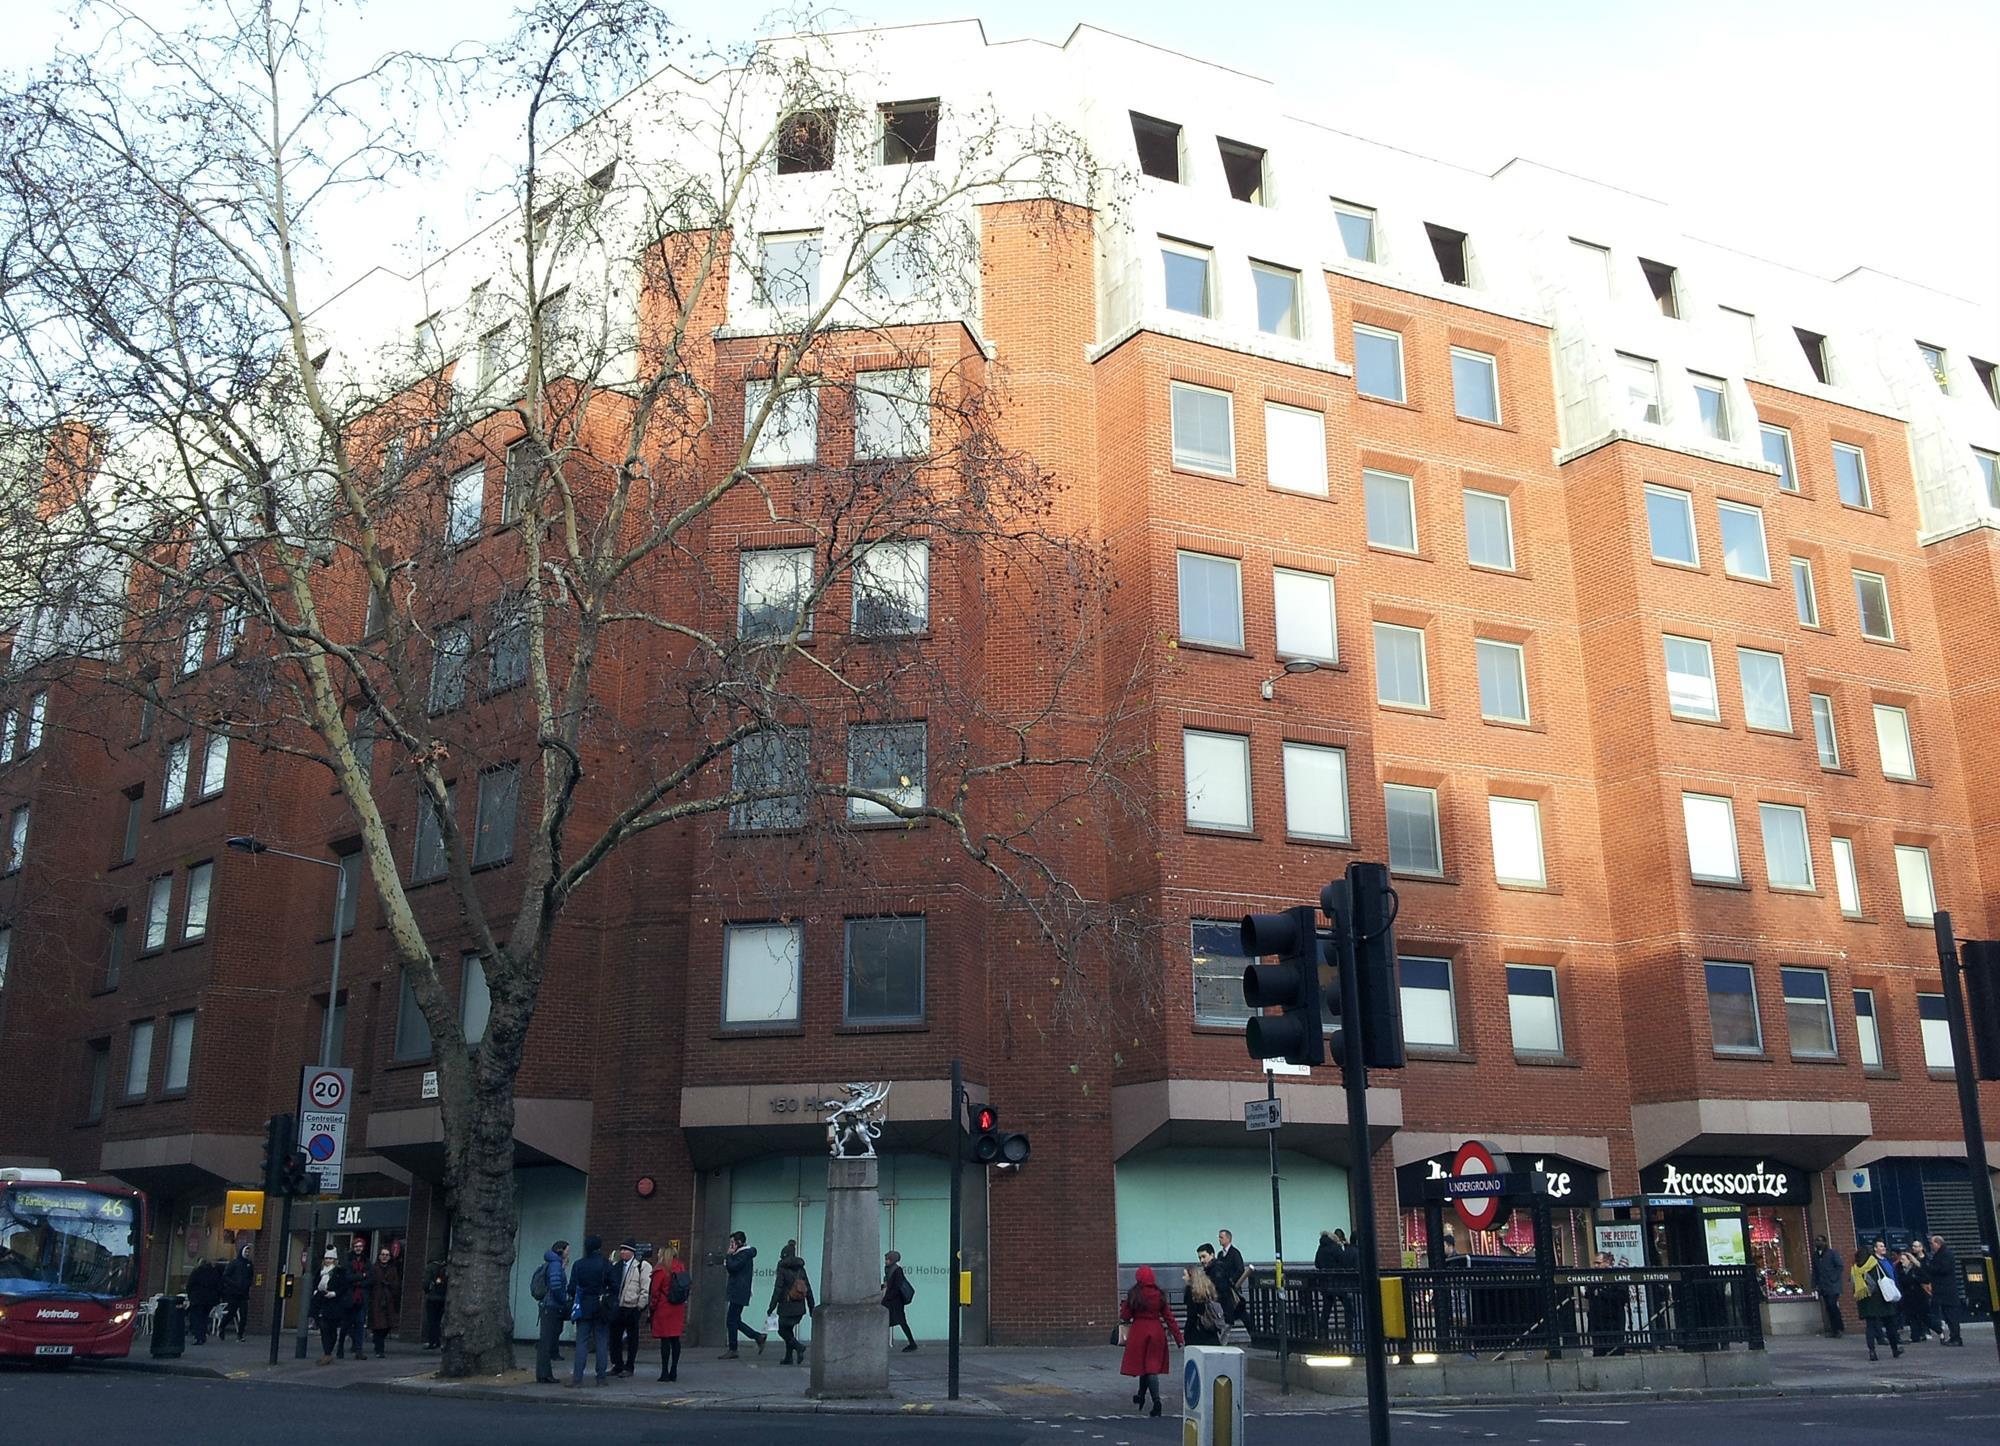 Perkins & Will's Holborn plans set for green light | News ...